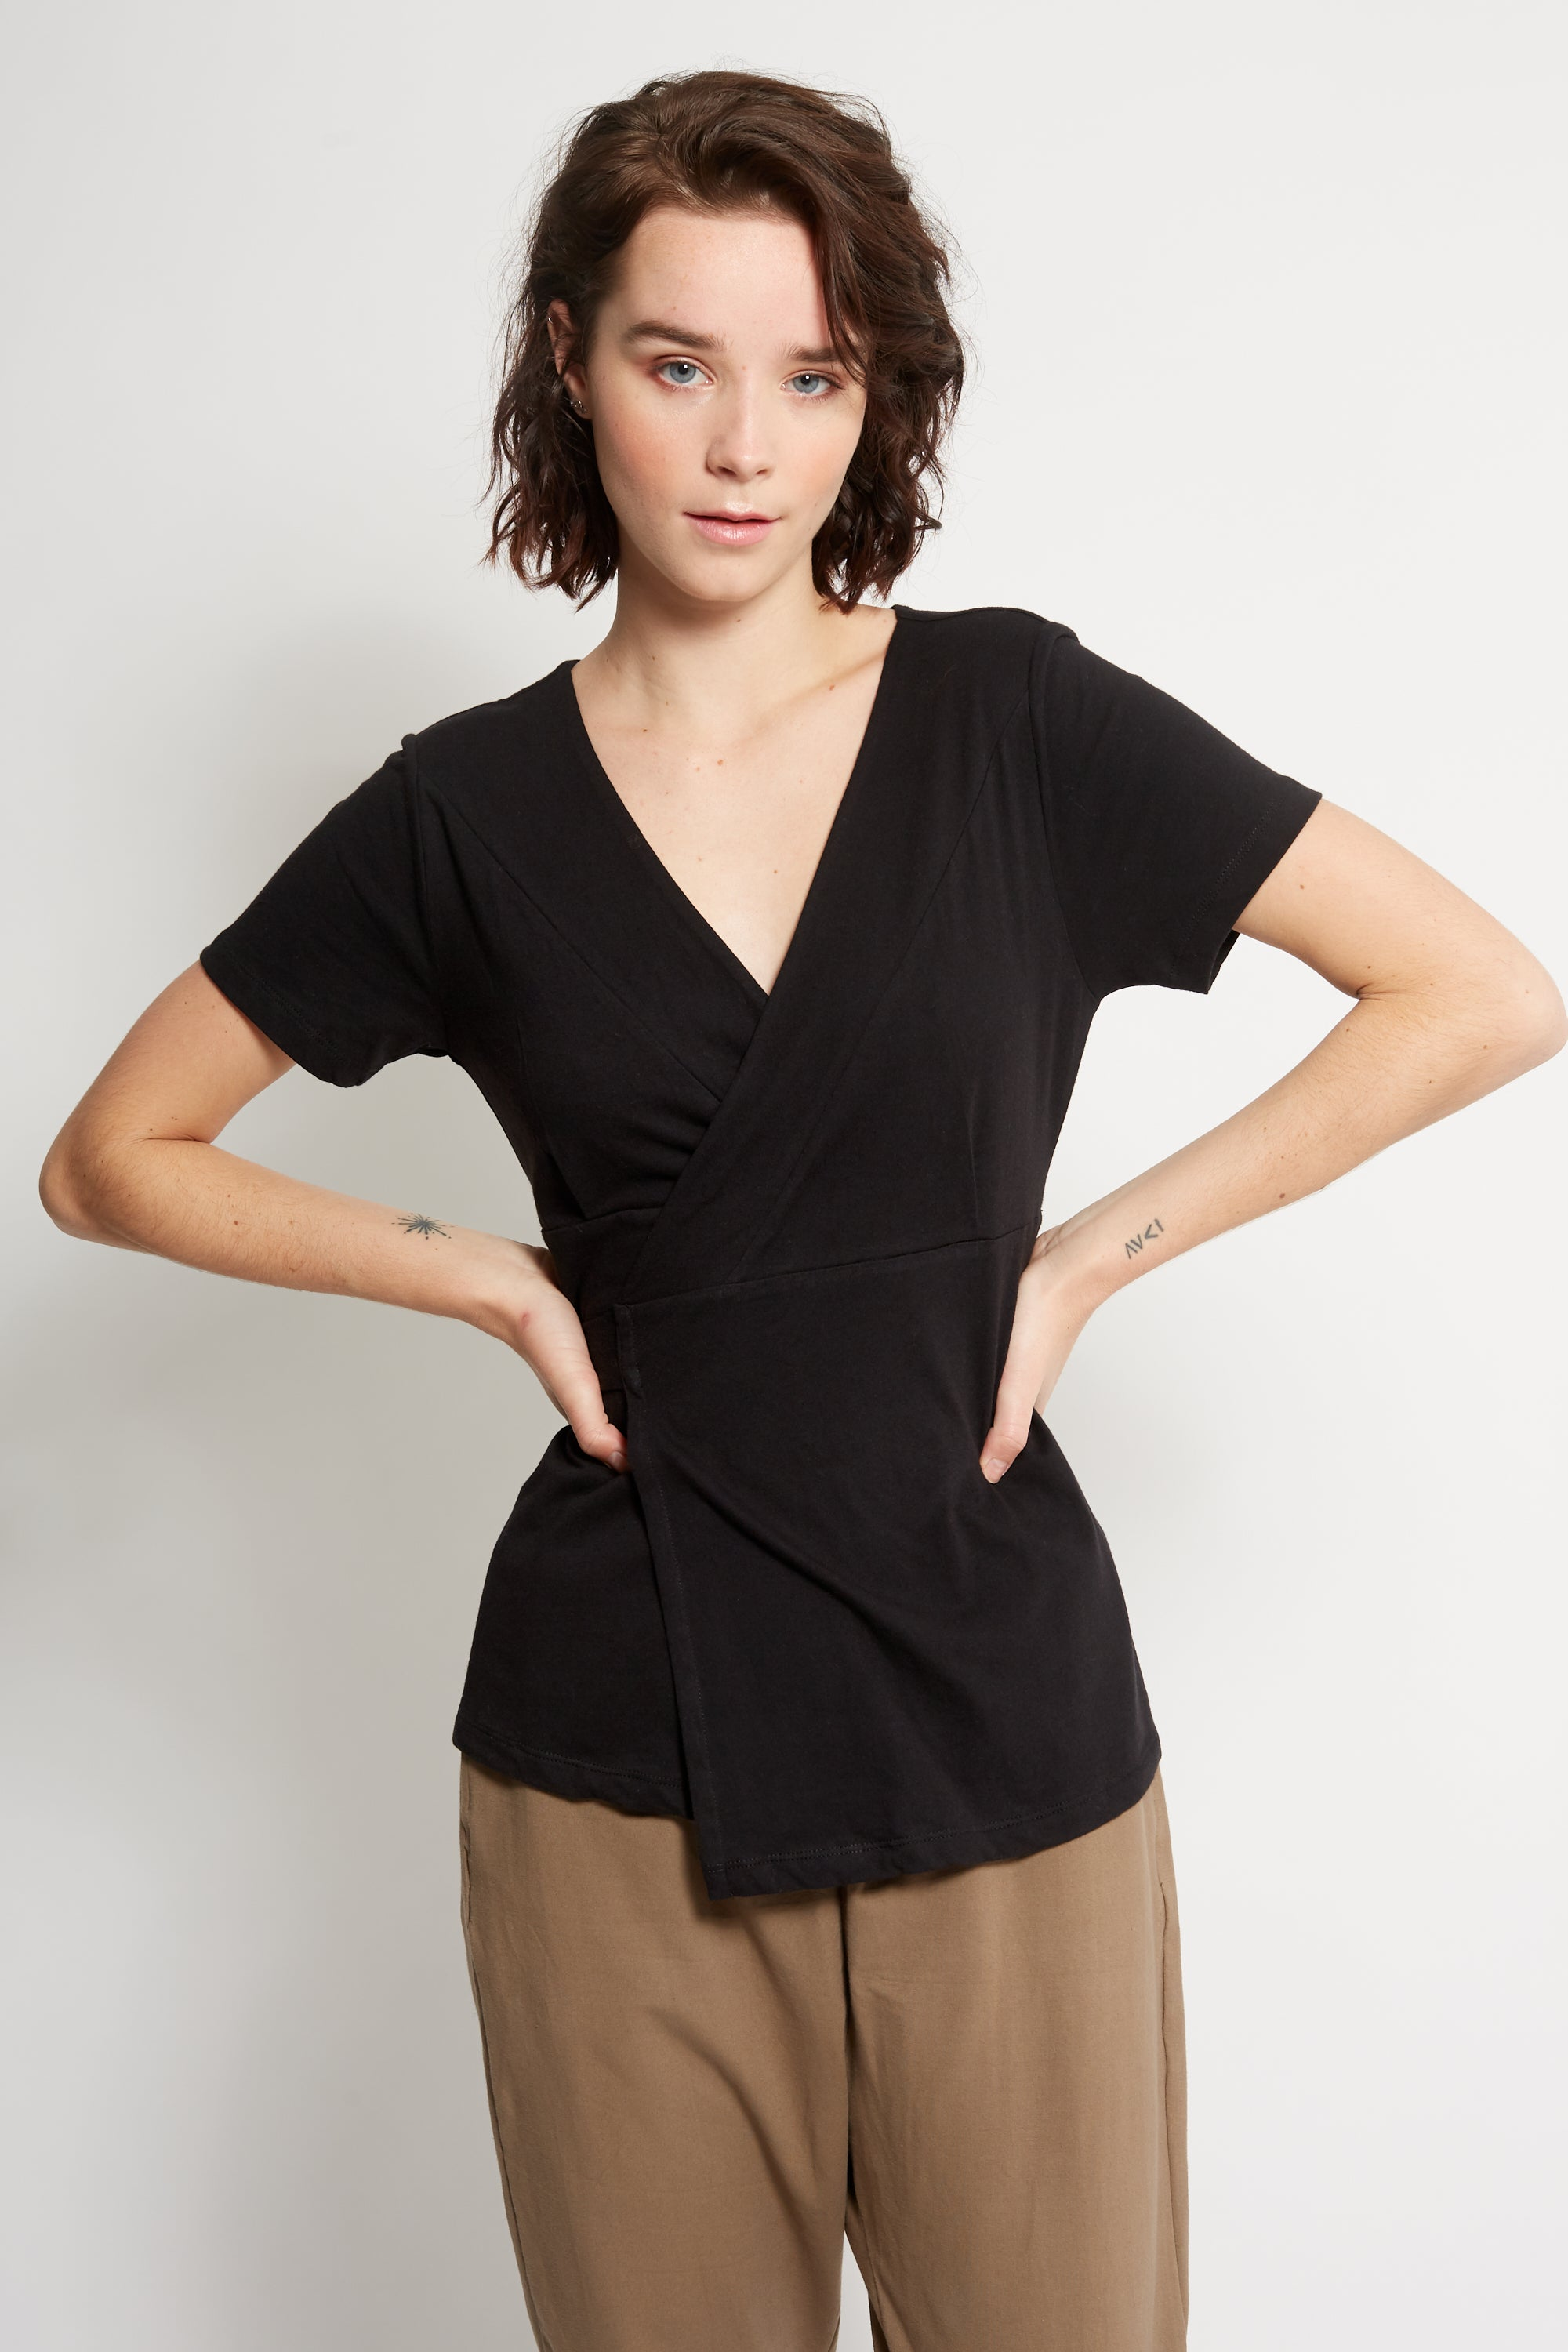 Dorsu | Ethical Clothing Australia | ECO.MONO | Melbourne